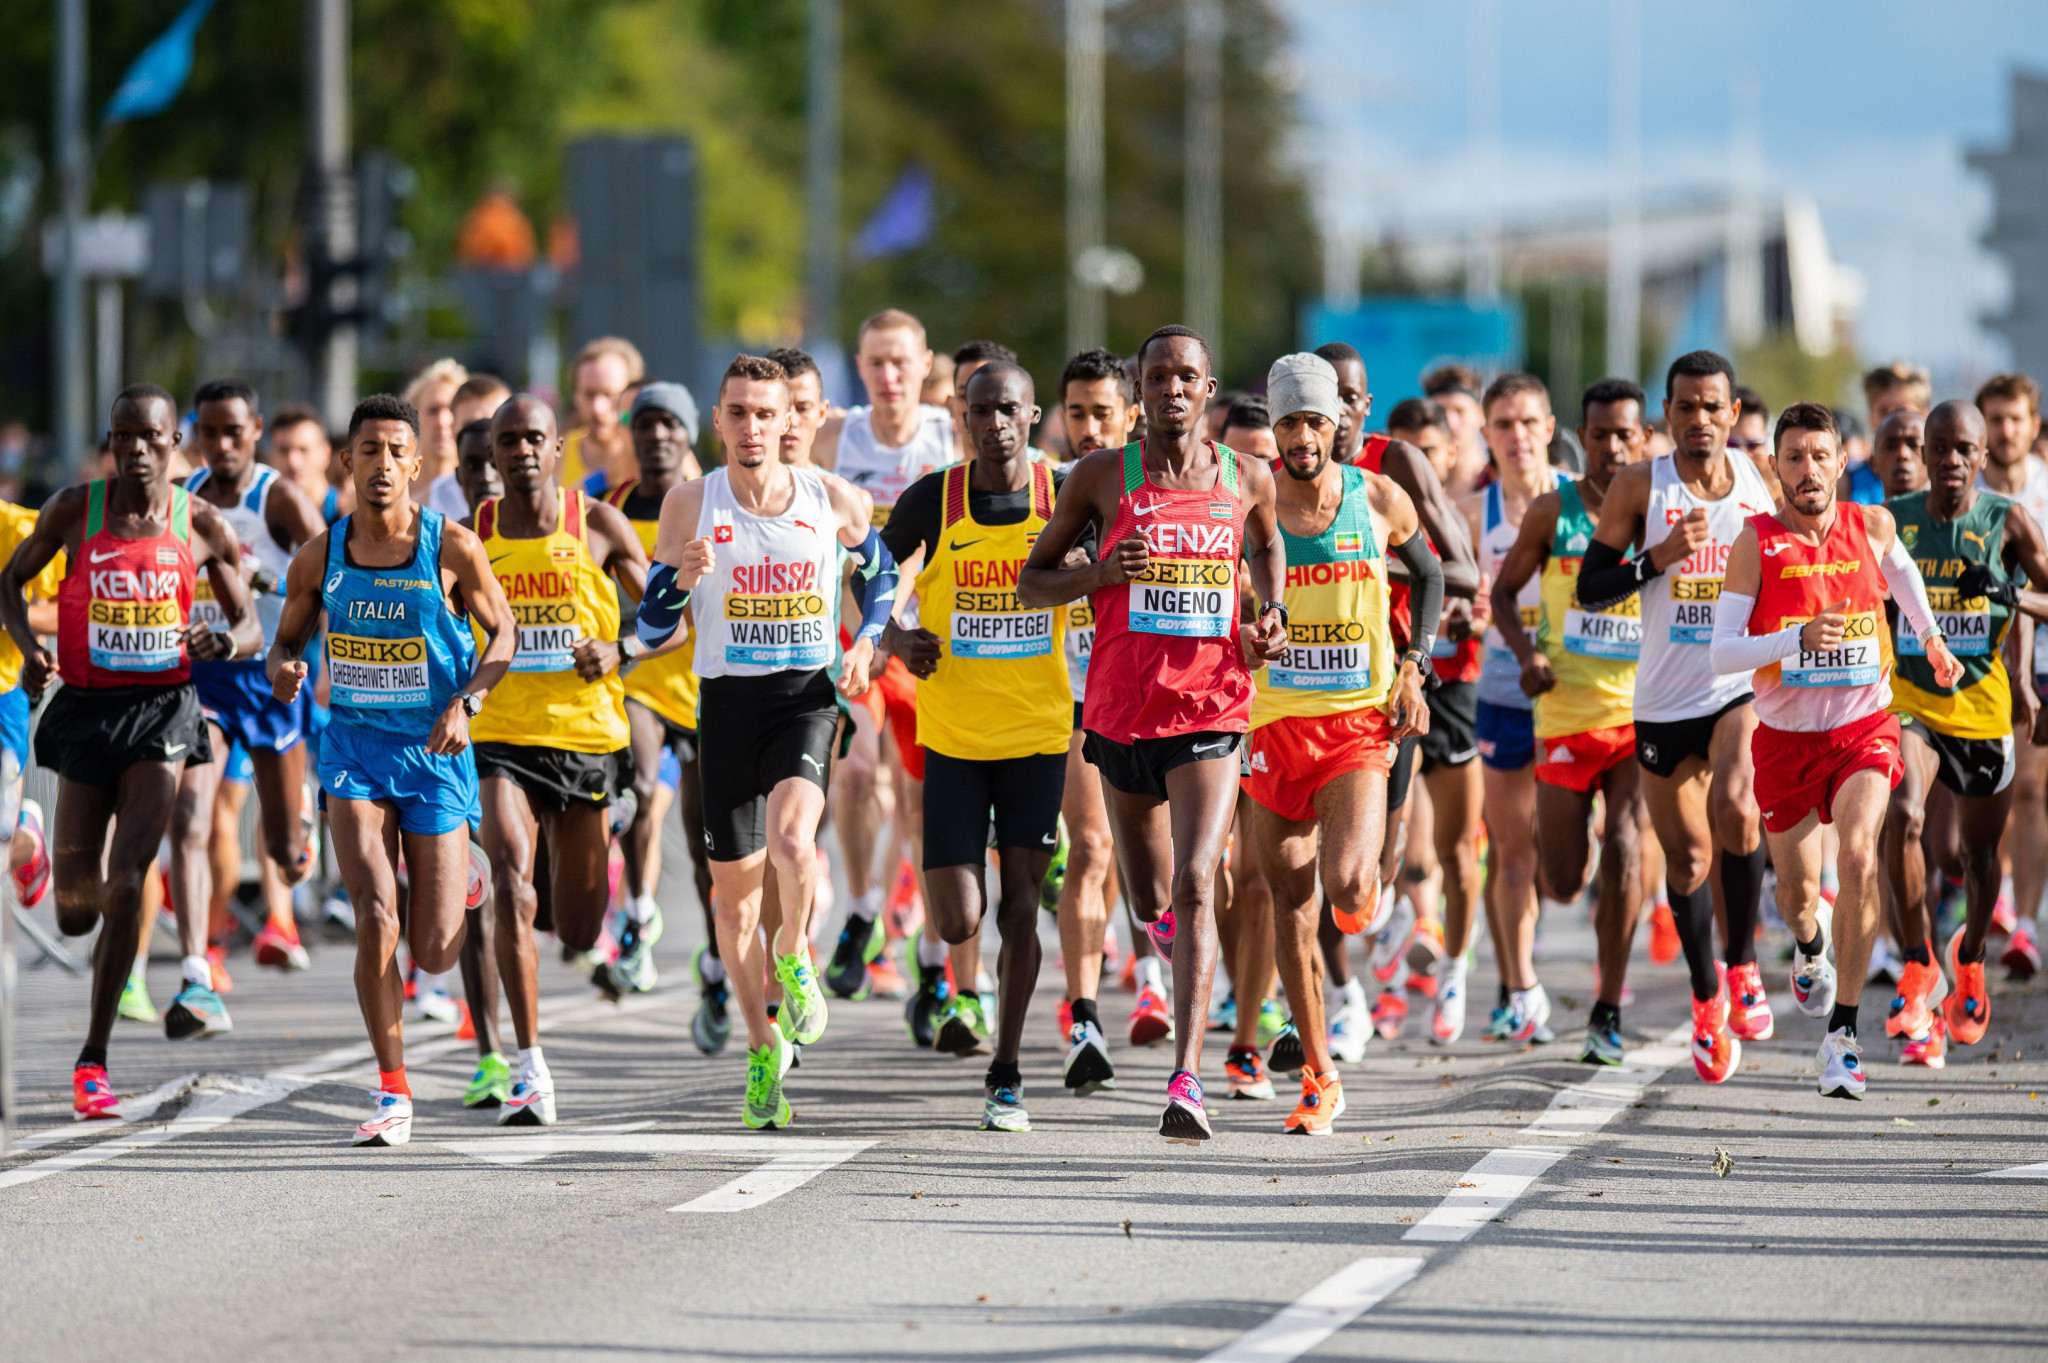 A bid has been submitted for the inaugural World Athletics Road Running Championships ©Getty Images